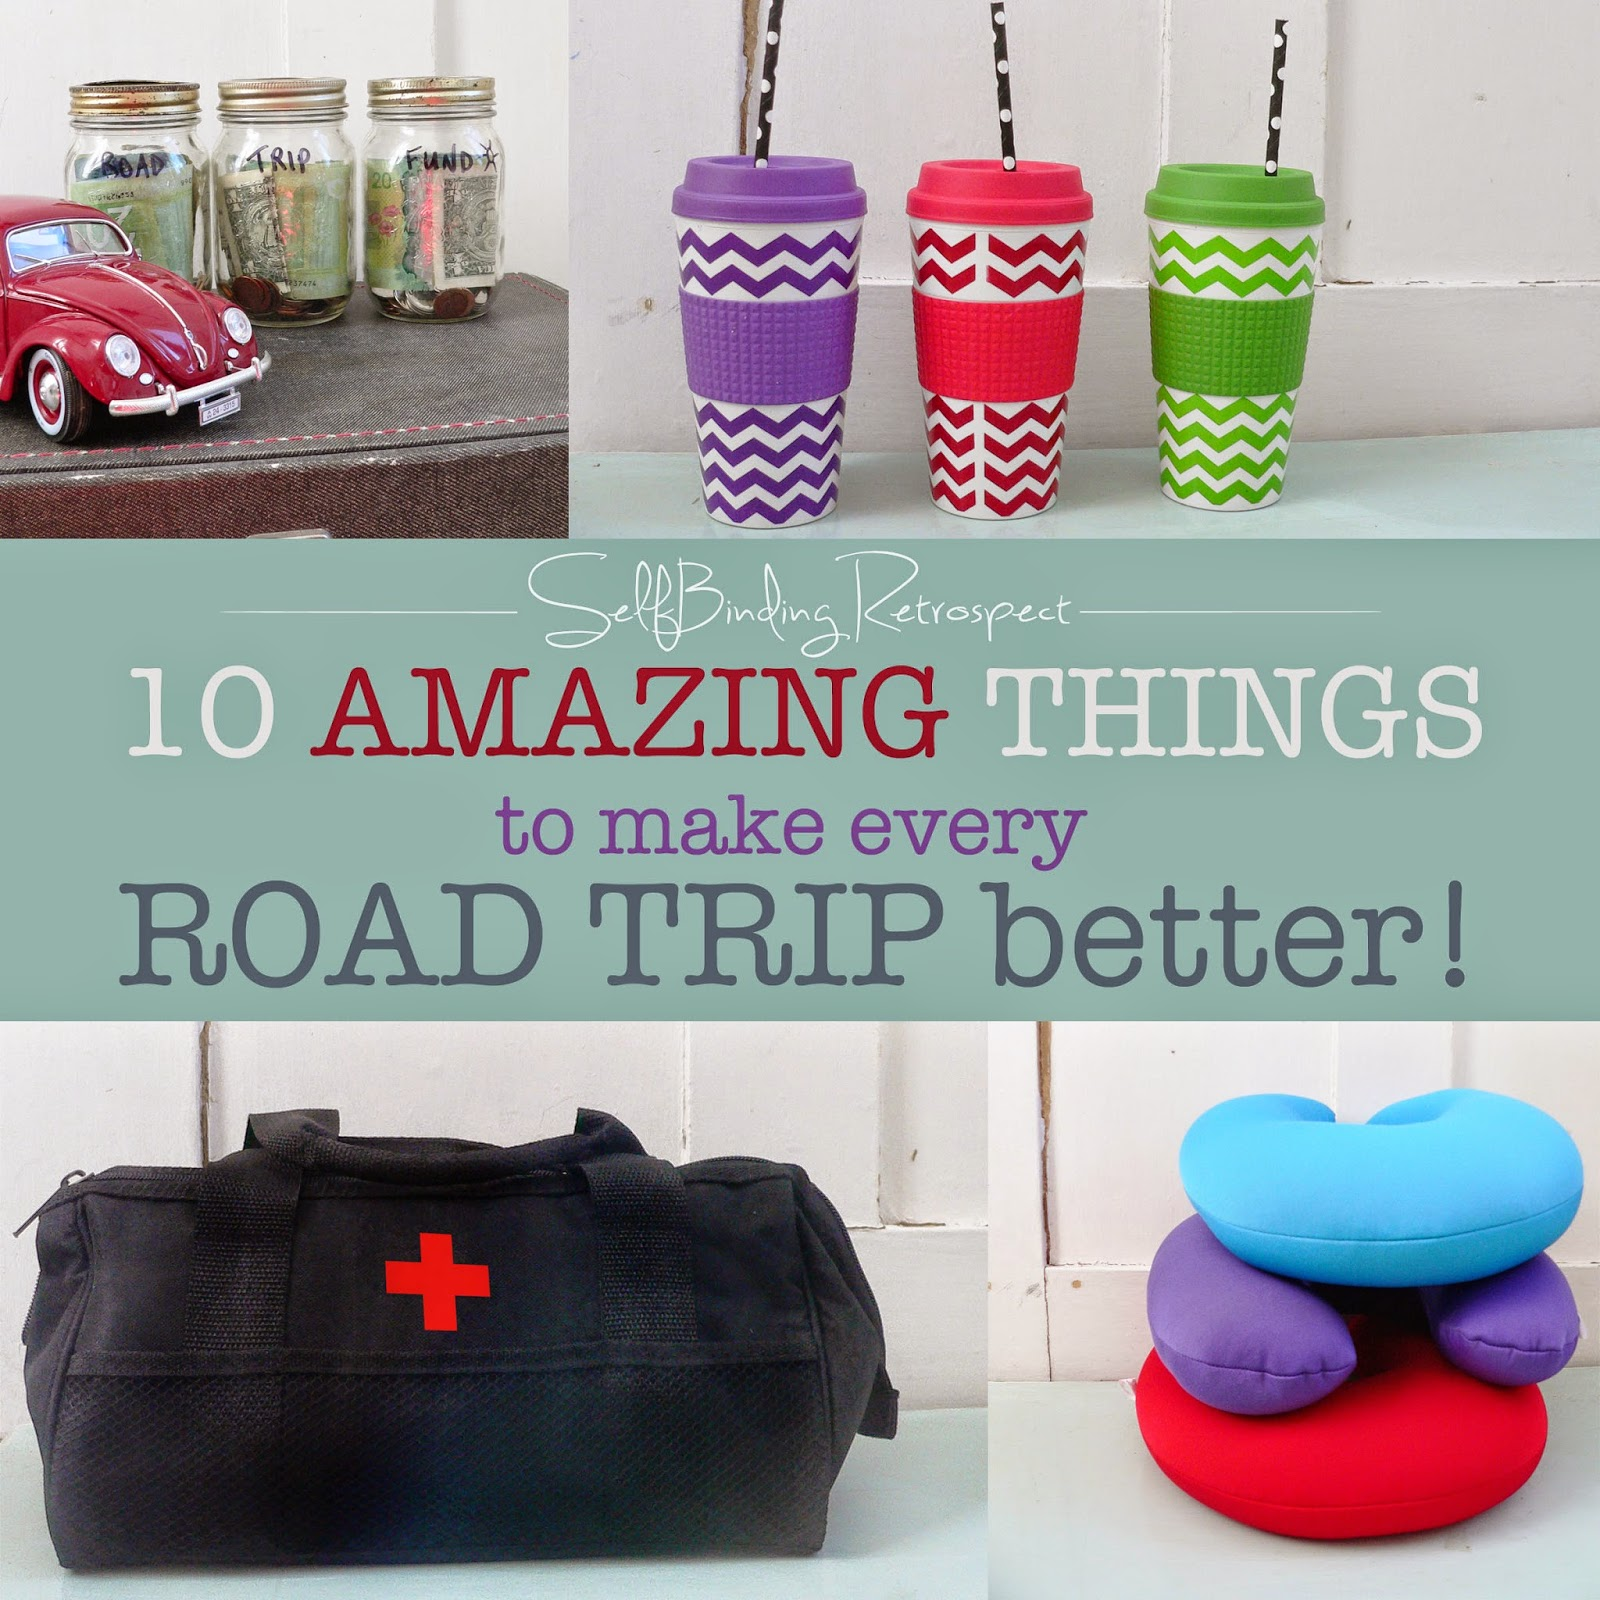 10 amazing things to make every road trip better